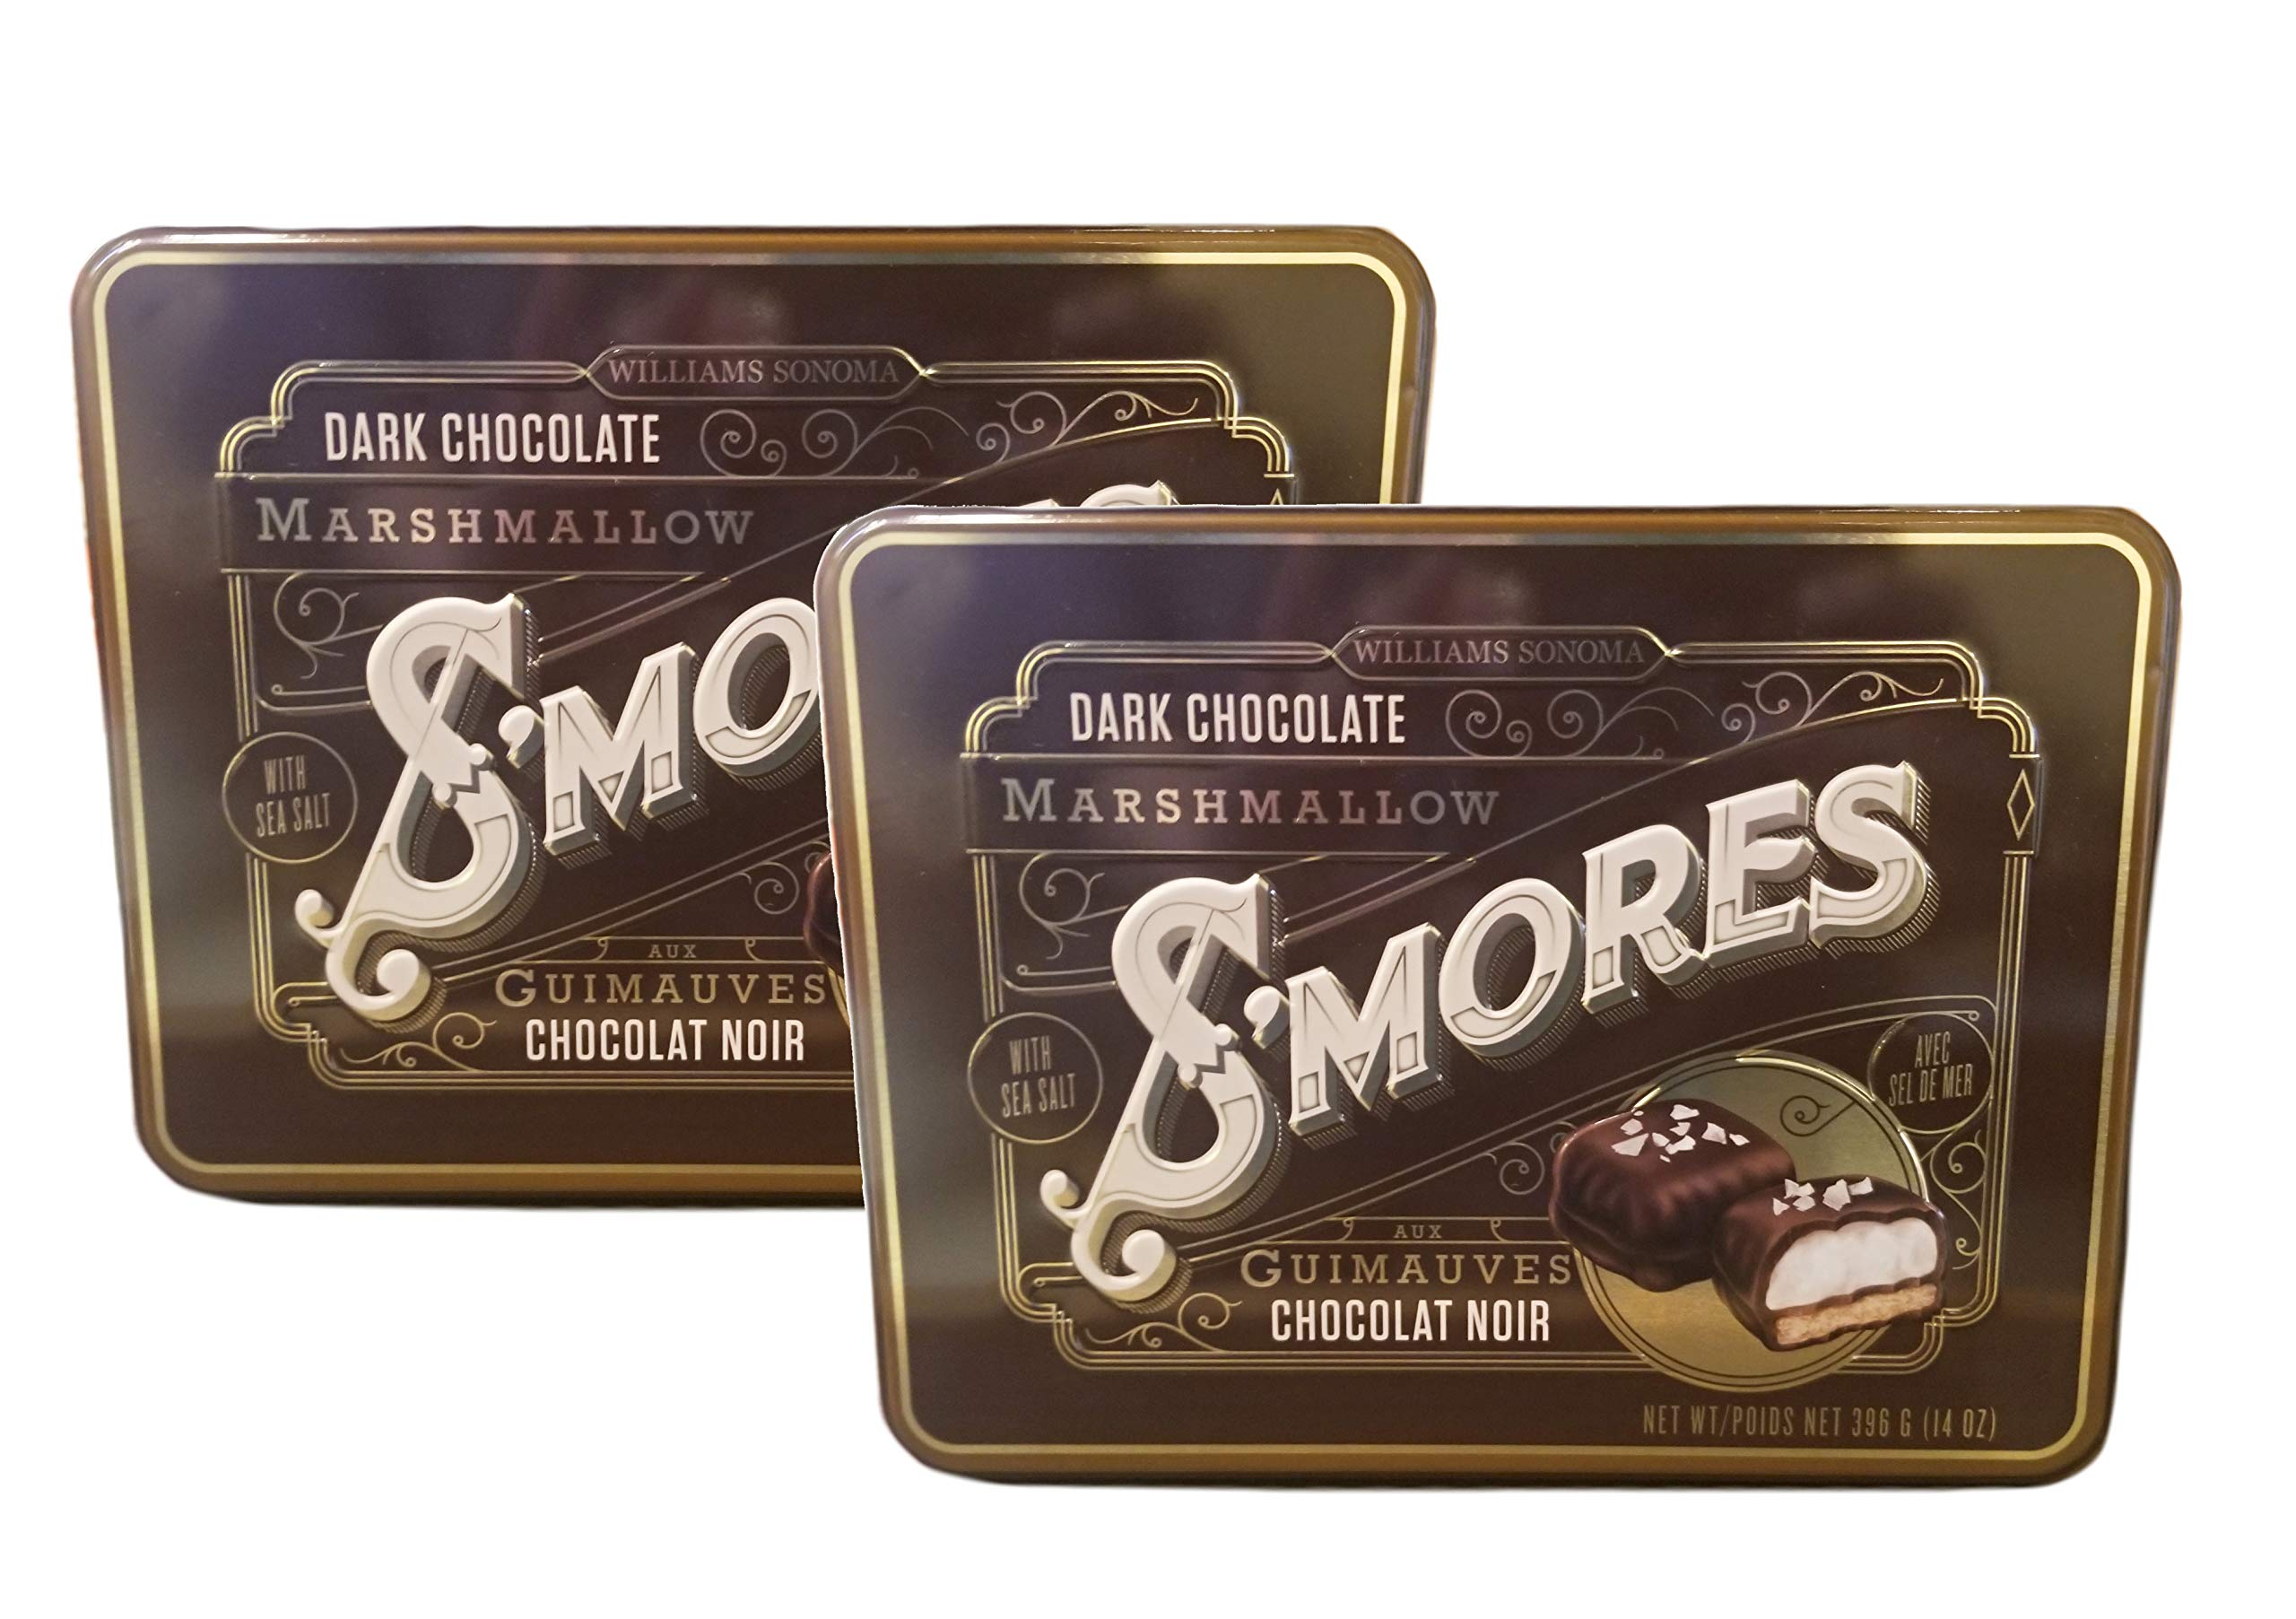 Williams Sonoma Dark Chocolate S'mores with Sea Salt Guittard Gourmet Sweets: 2 Pack - 14 oz. Tins by FCV